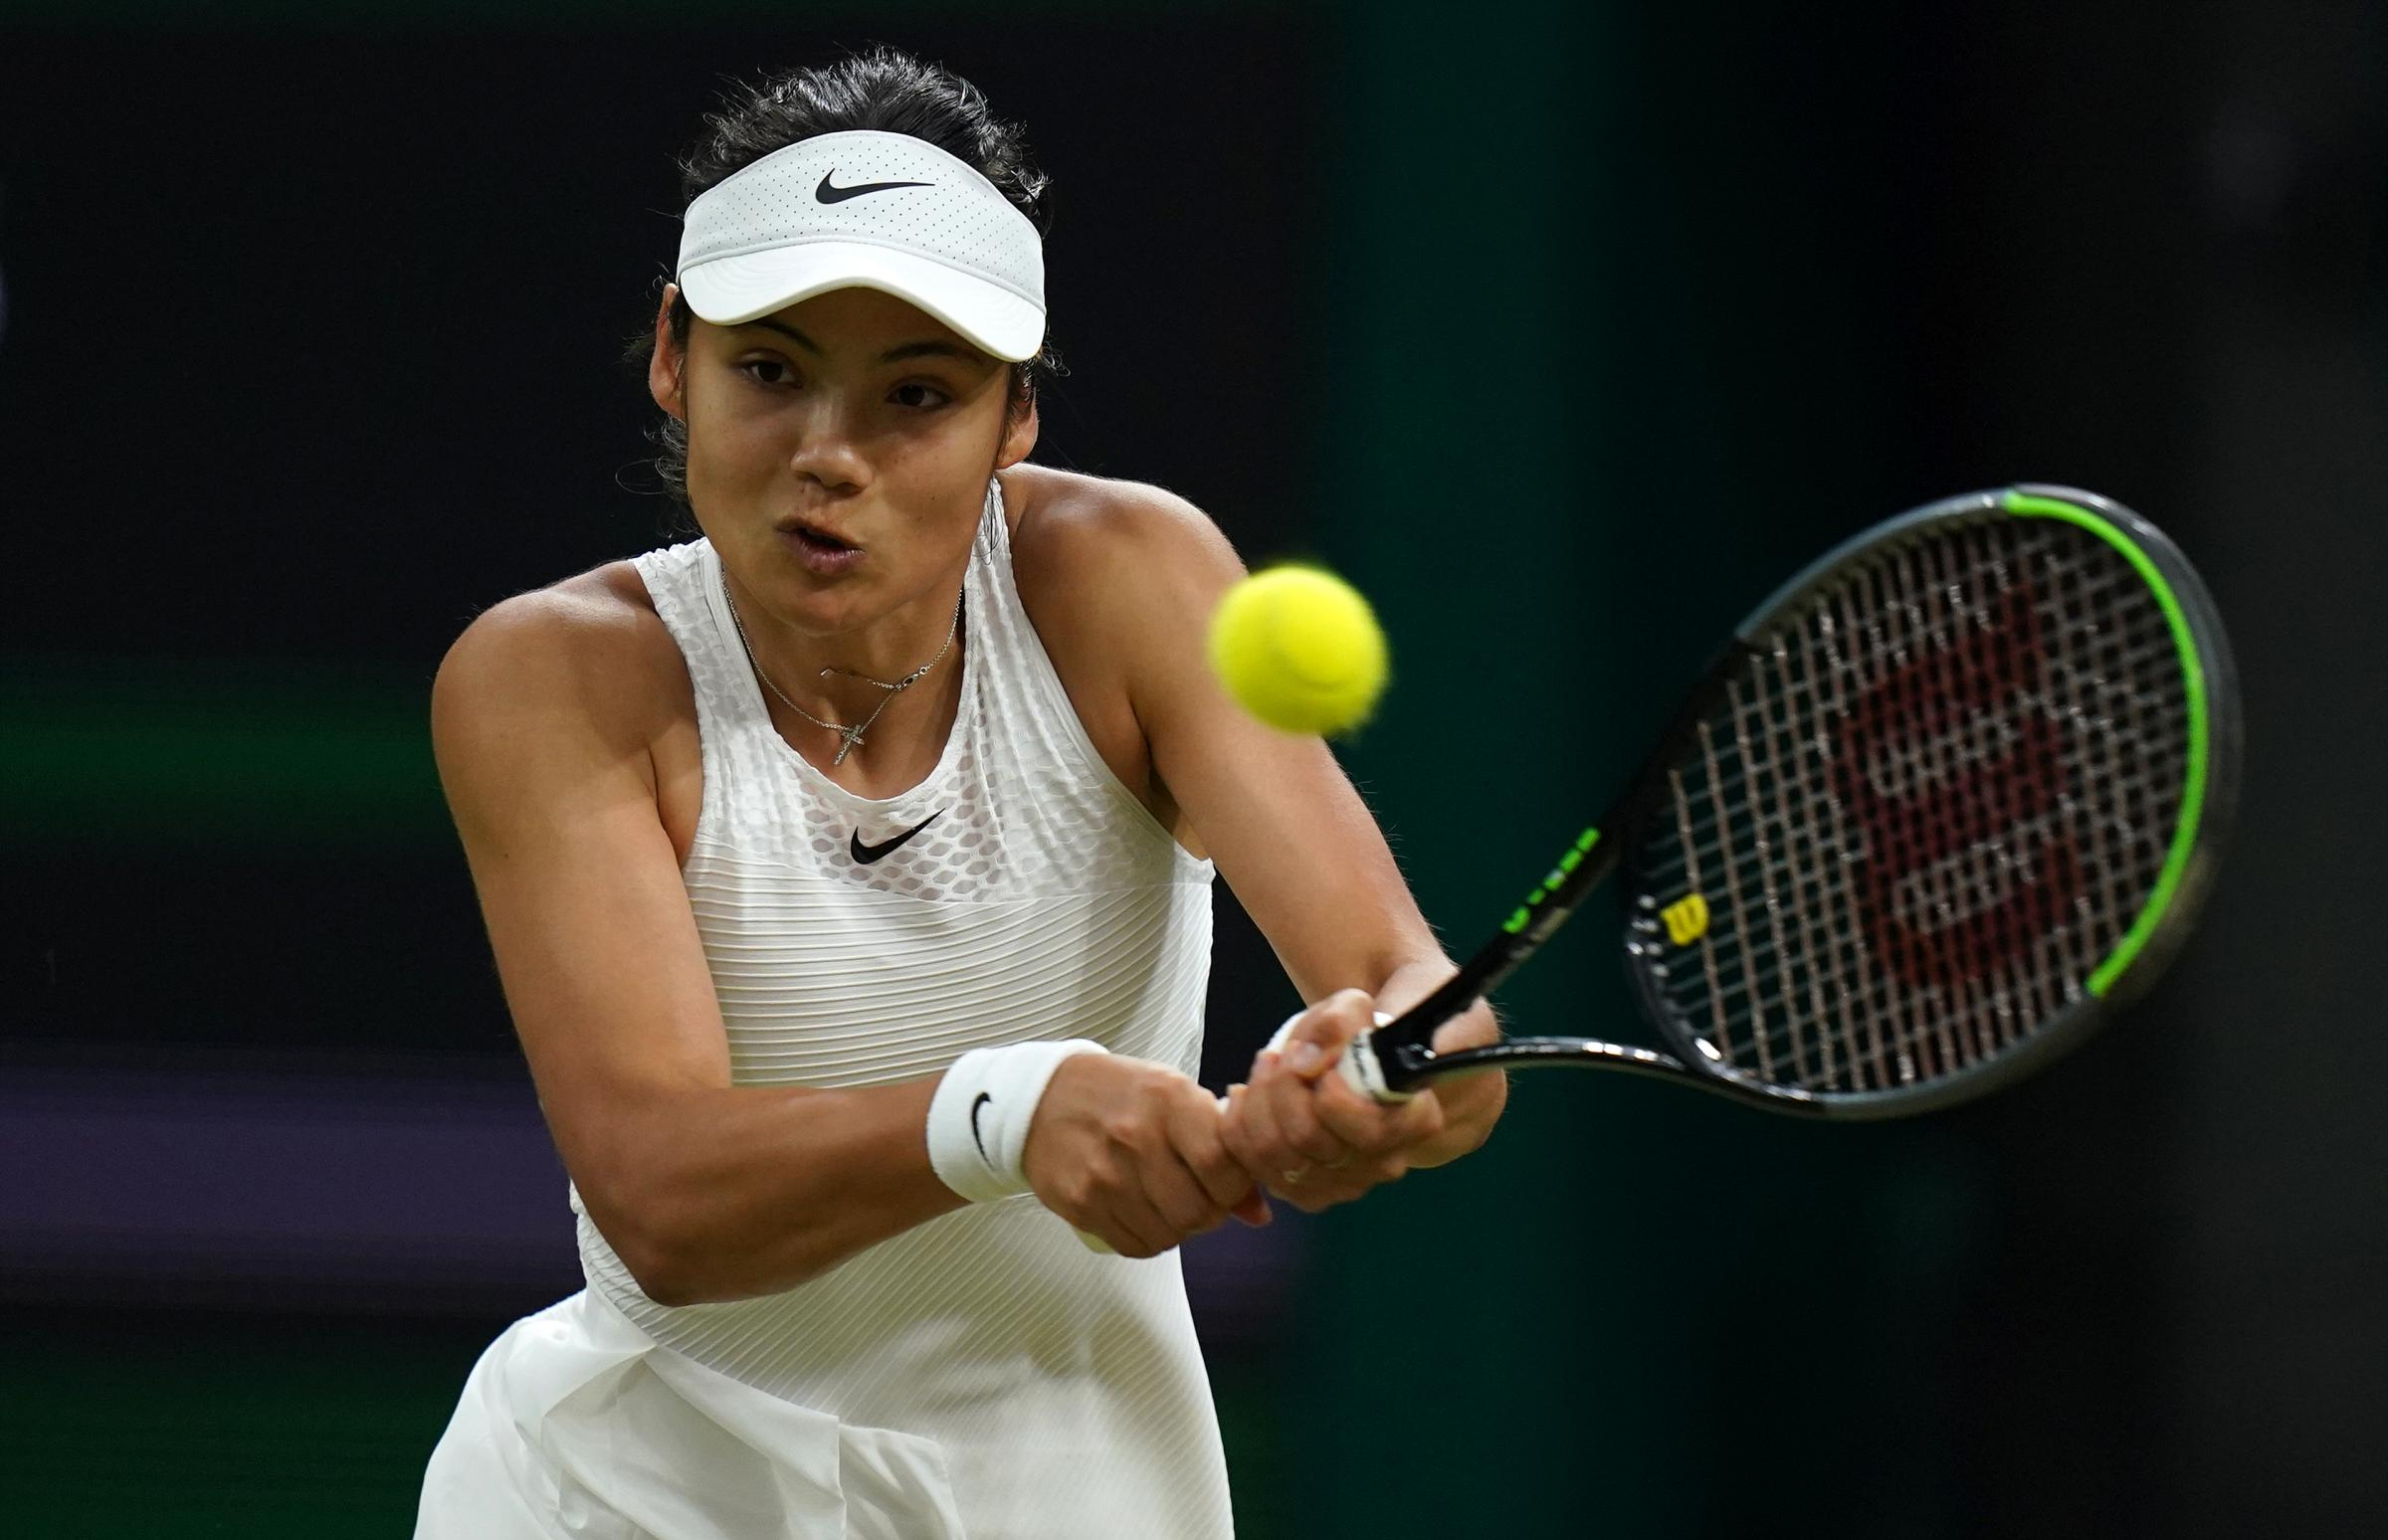 US Open: What time is Emma Raducanu playing today and how to watch in UK